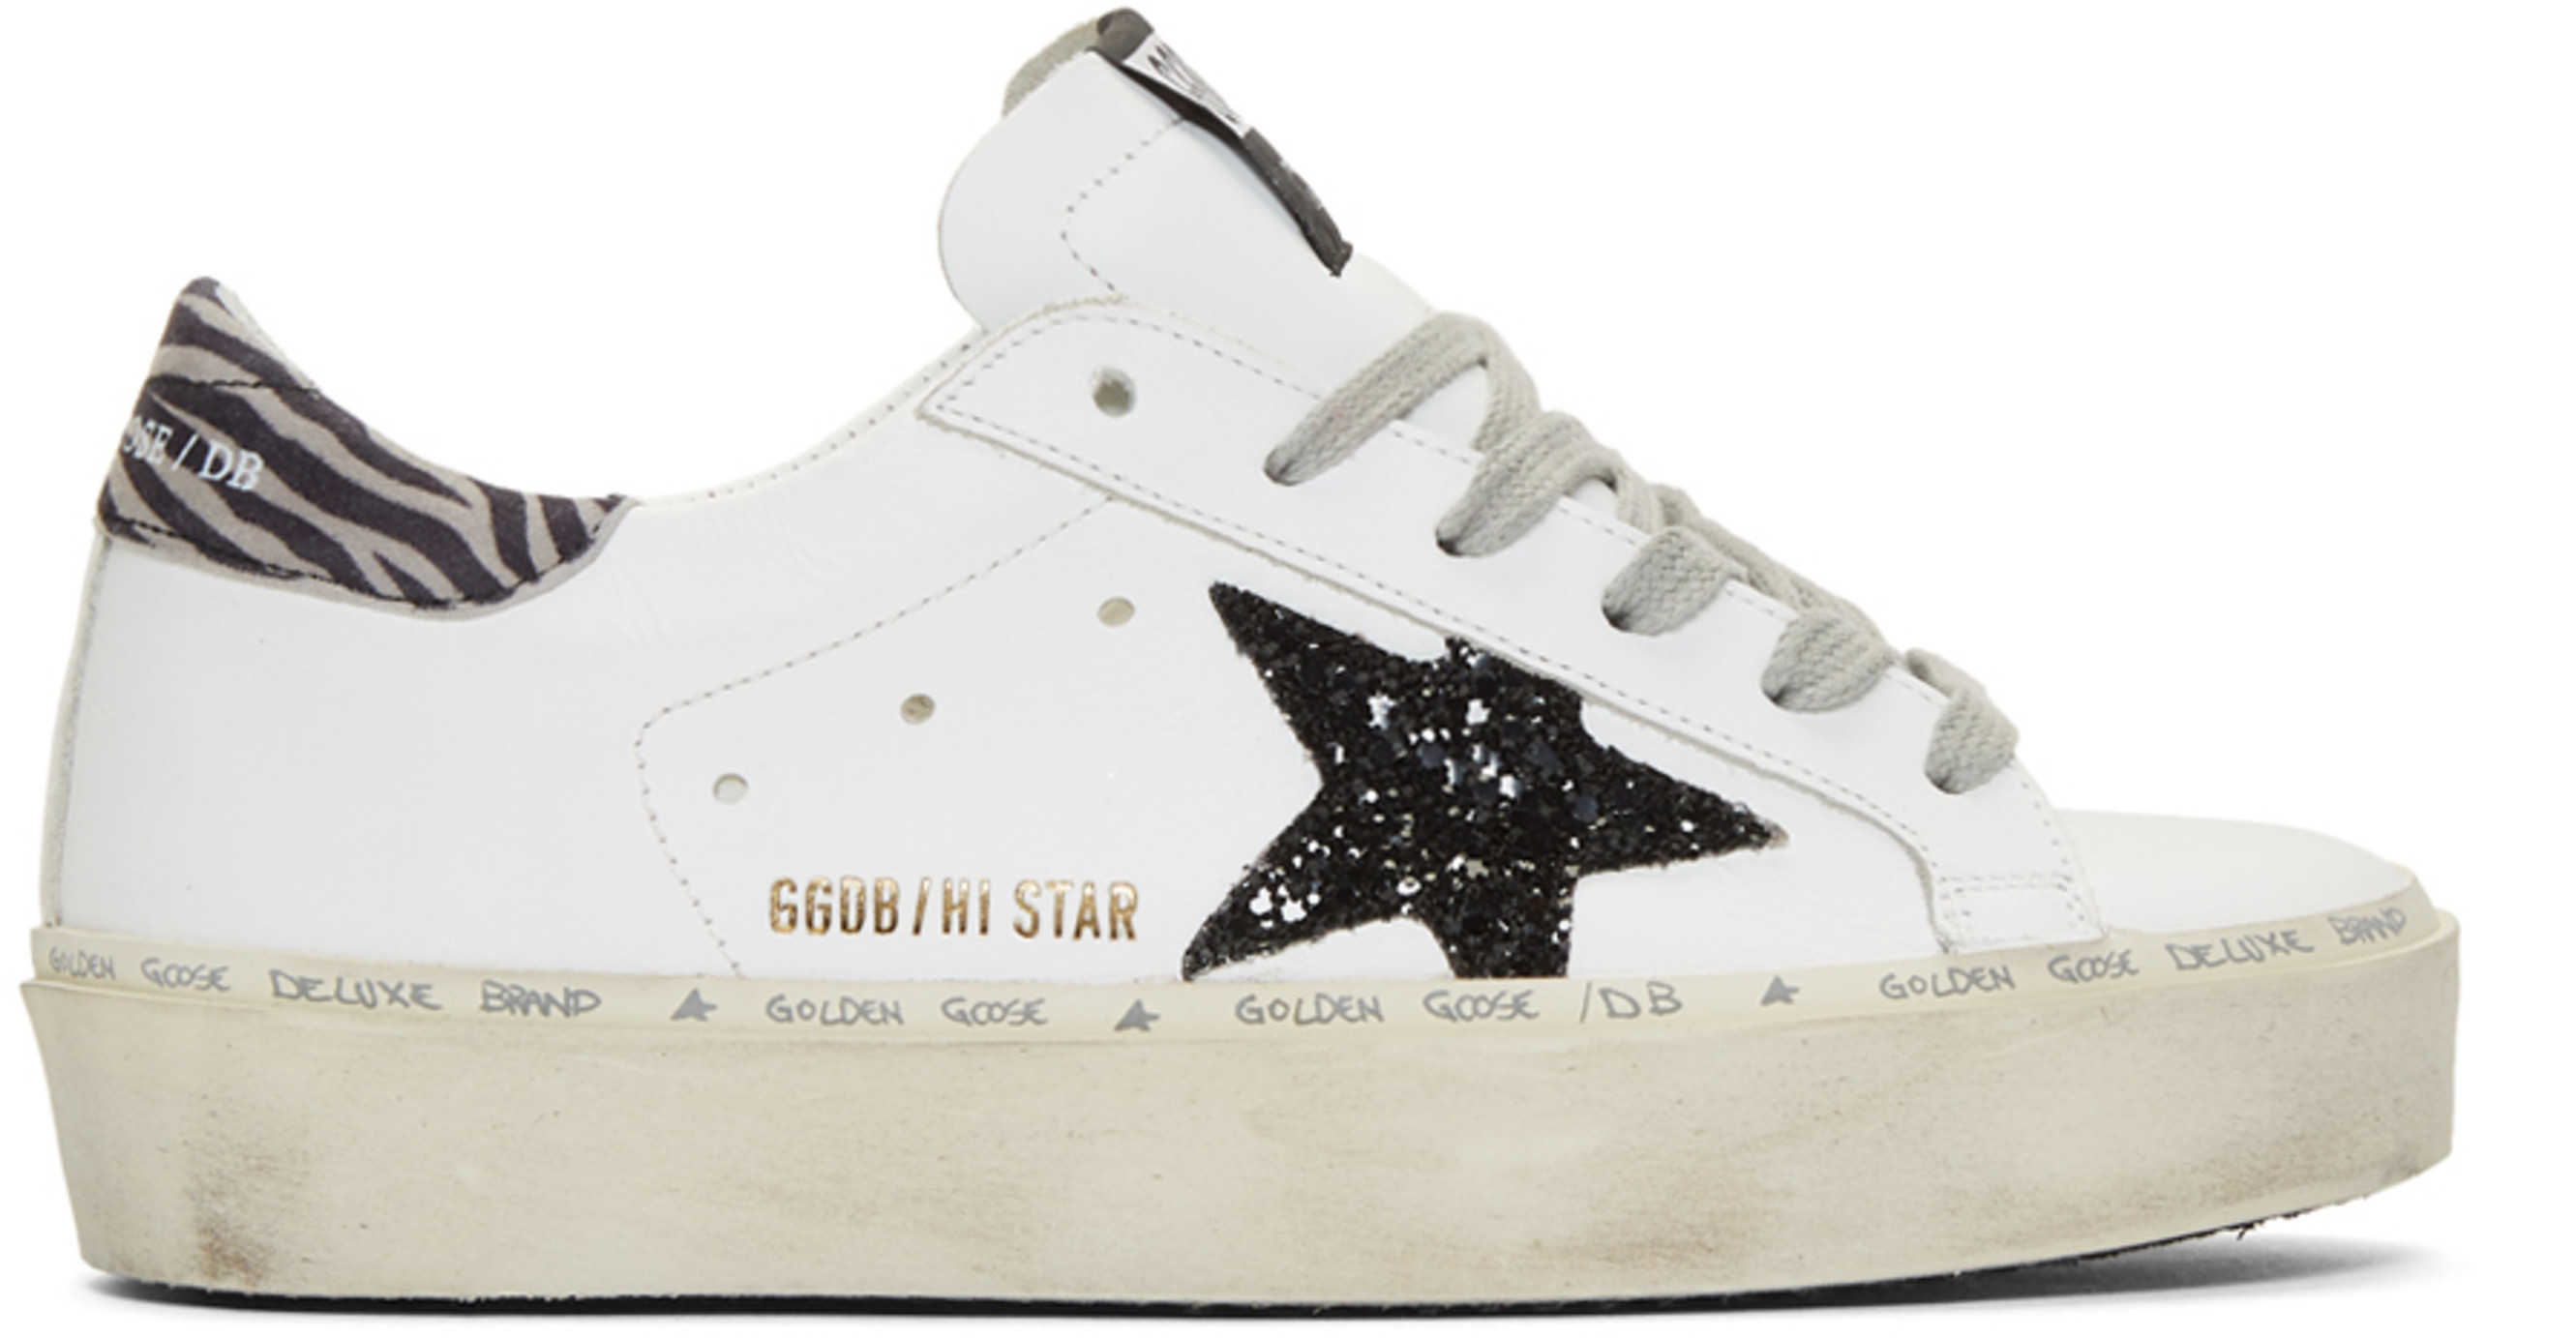 c16facaa7f0 Golden Goose for Women SS19 Collection